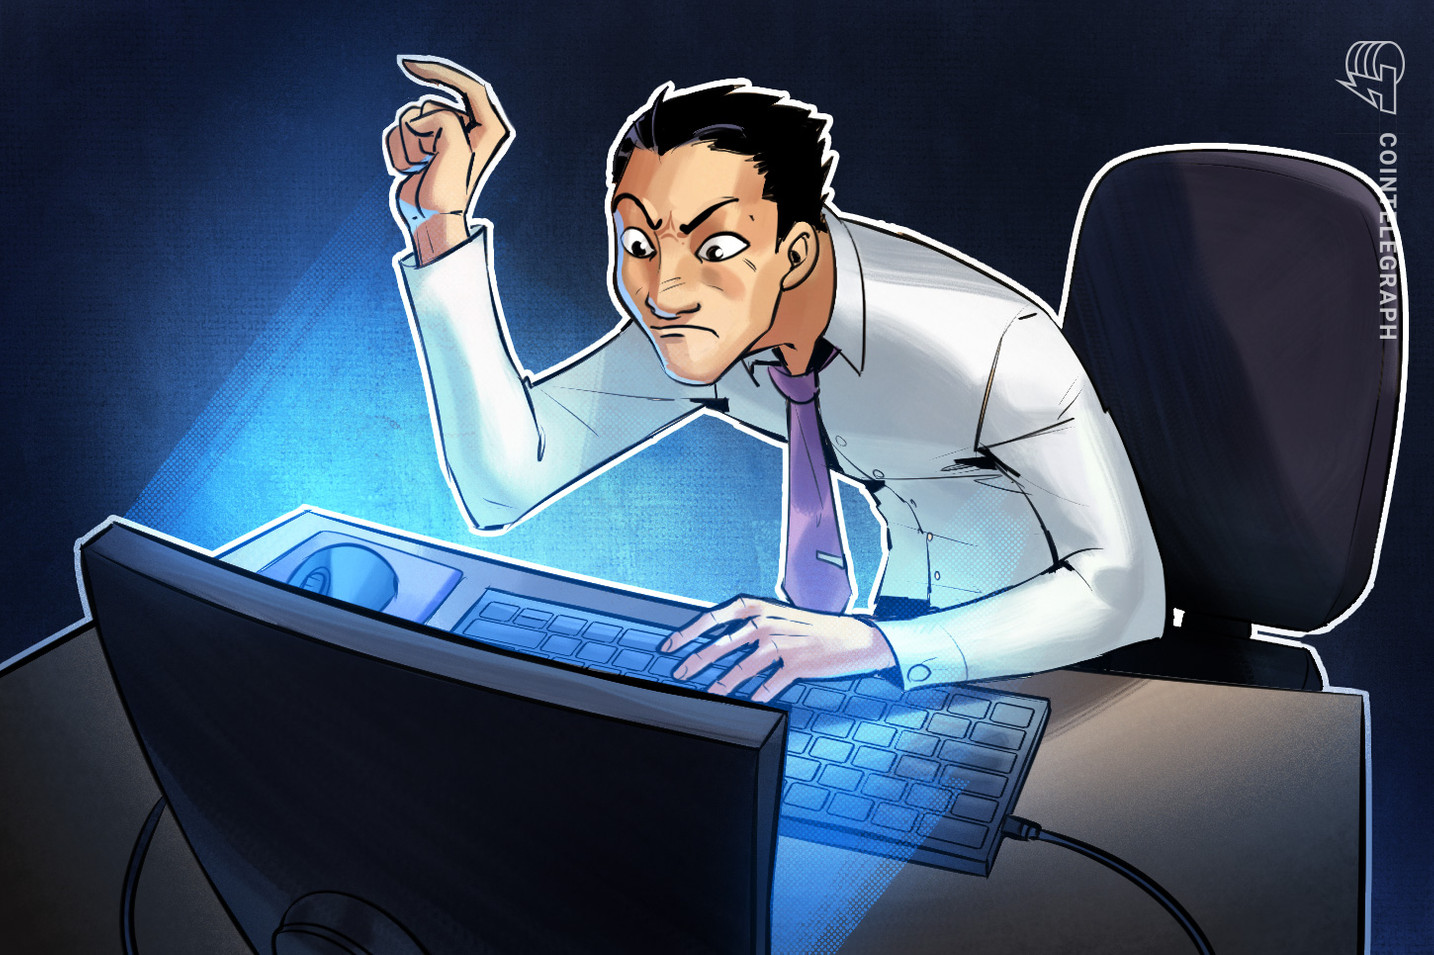 One Crypto Youtuber's Banning Nightmare Still Not Over